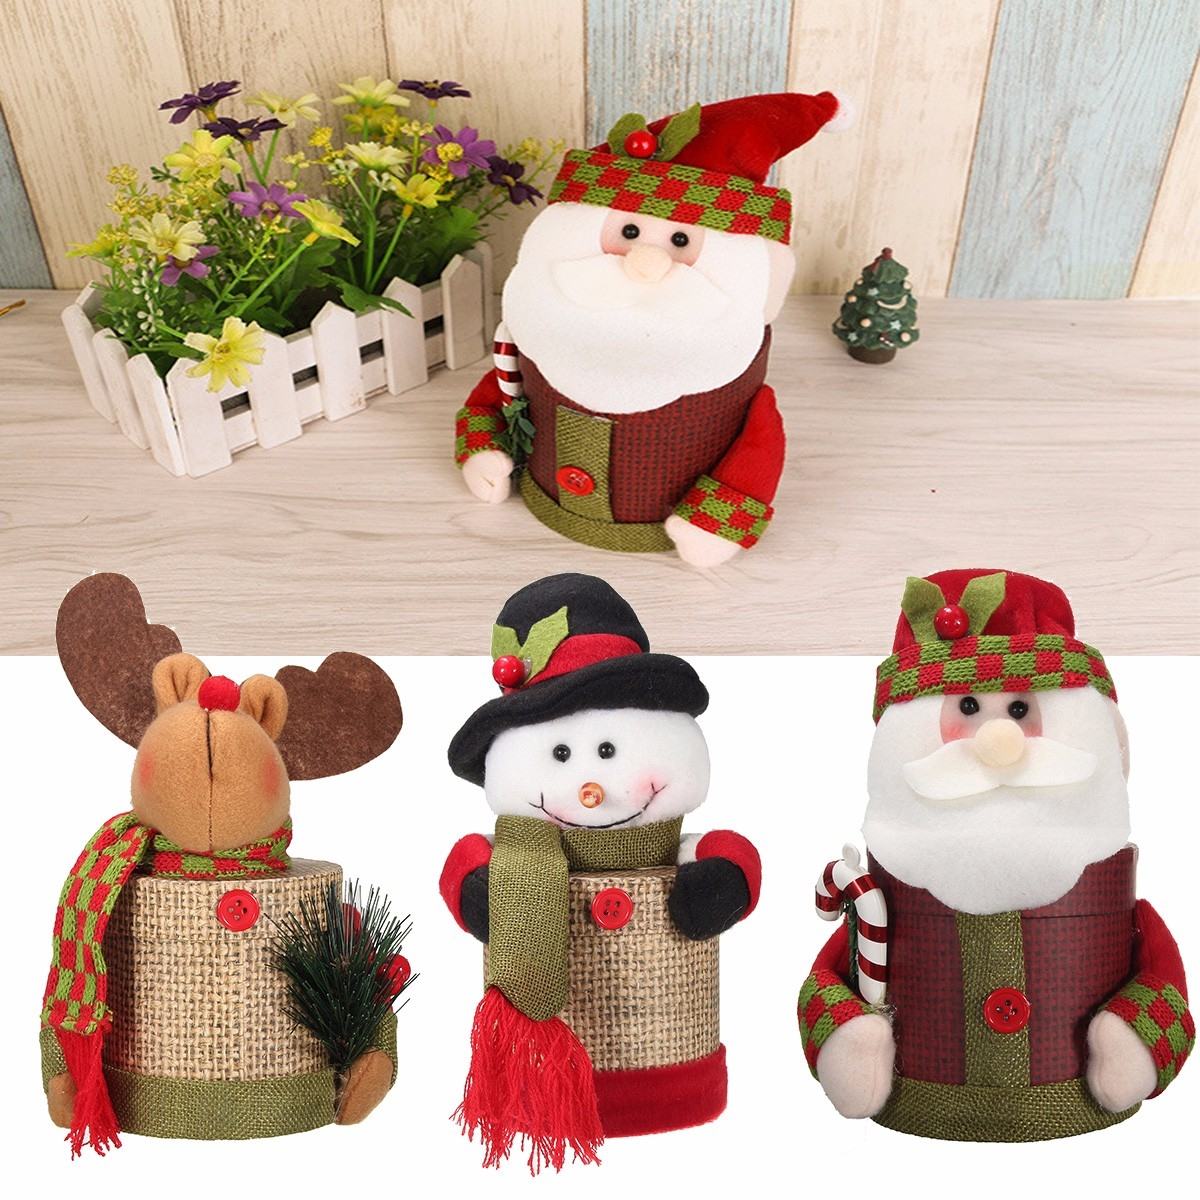 Santa Claus / Snowman / Elk Santa Claus Gift Box Christmas Candy Box Decorations